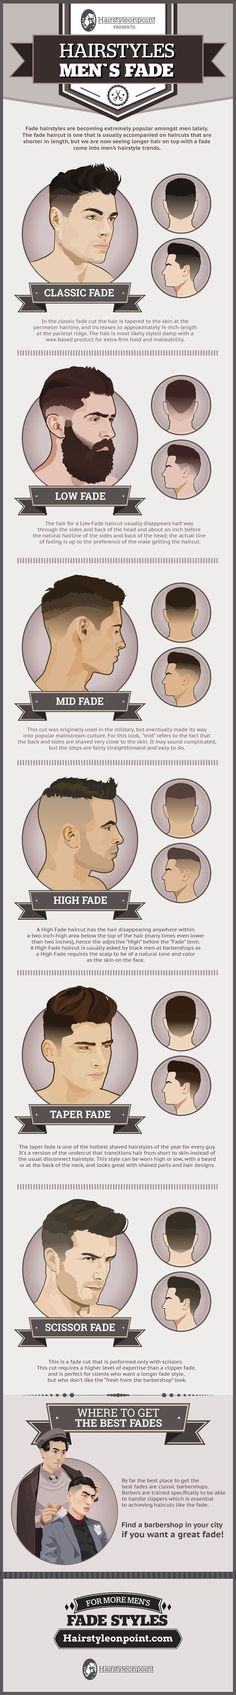 Trendy Hair Styling für Männer mit Undercut 2016 [Infographic] – More İdeas Trendy Haircuts, Haircuts For Men, Haircut Men, Barber Haircuts, Haircut Style, How To Fade Haircut, Low Fade Mens Haircut, Hairstyle Fade, Taper Fade Haircut